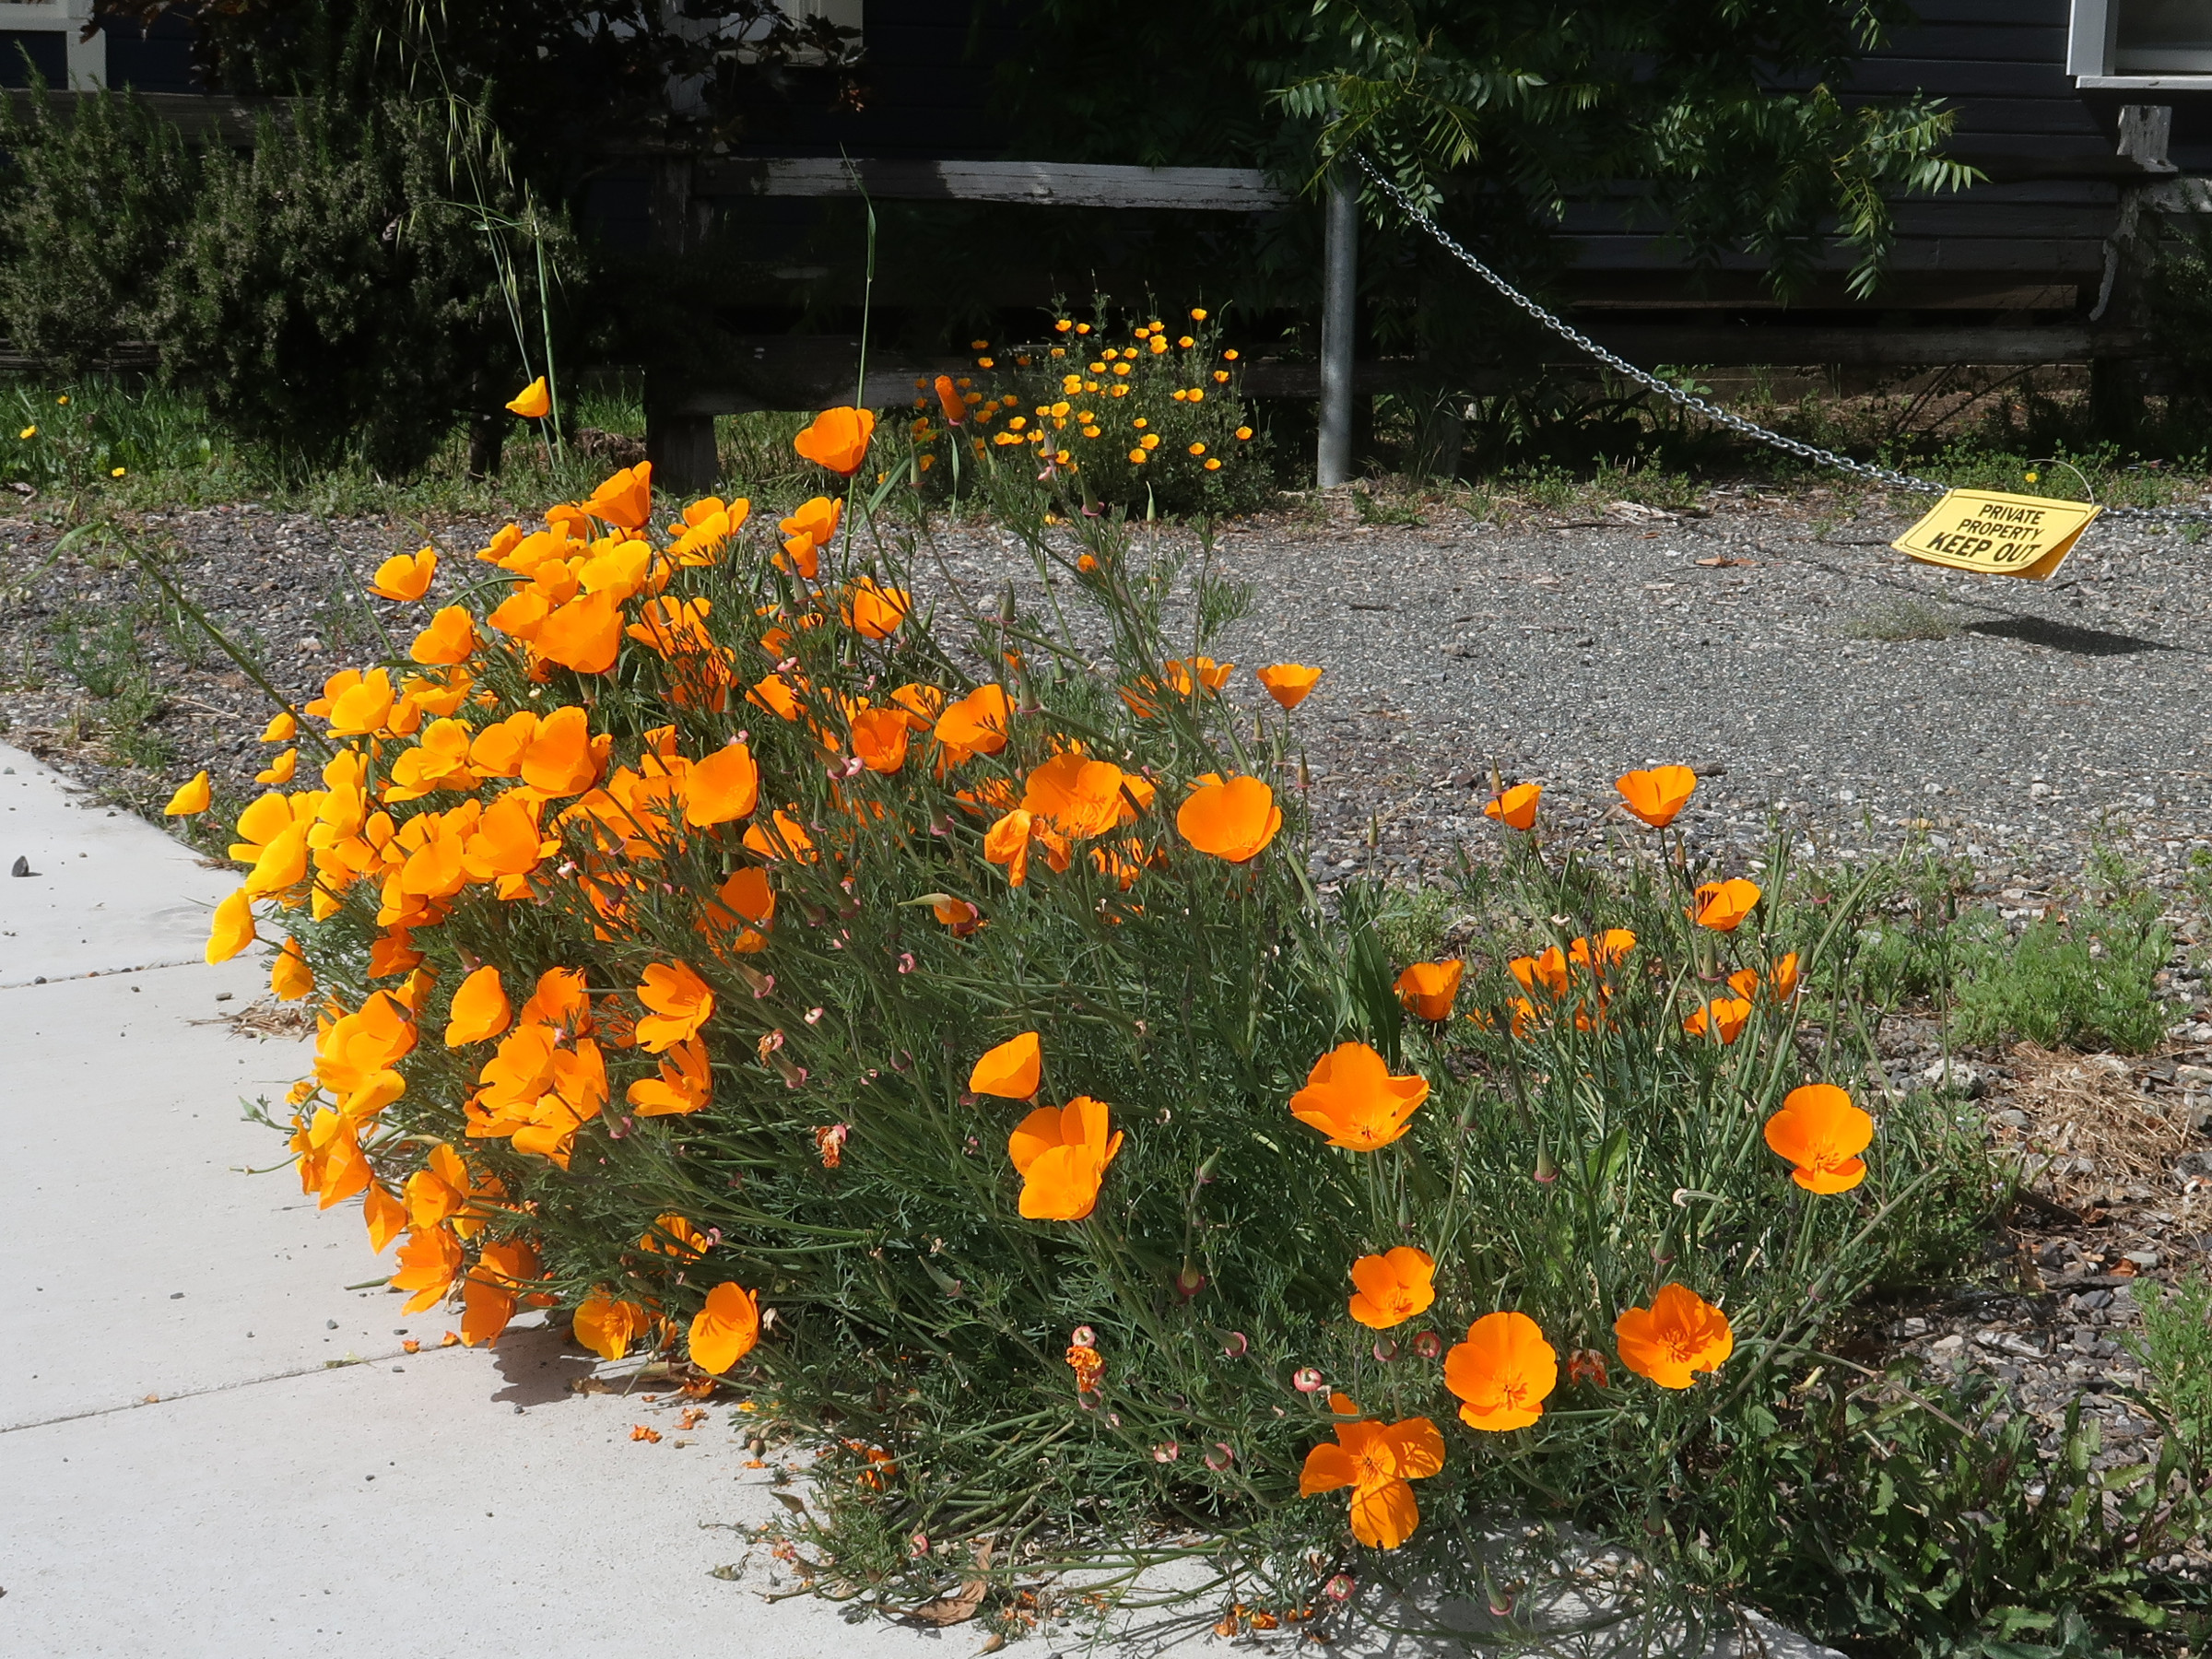 California Poppies in Willits, California